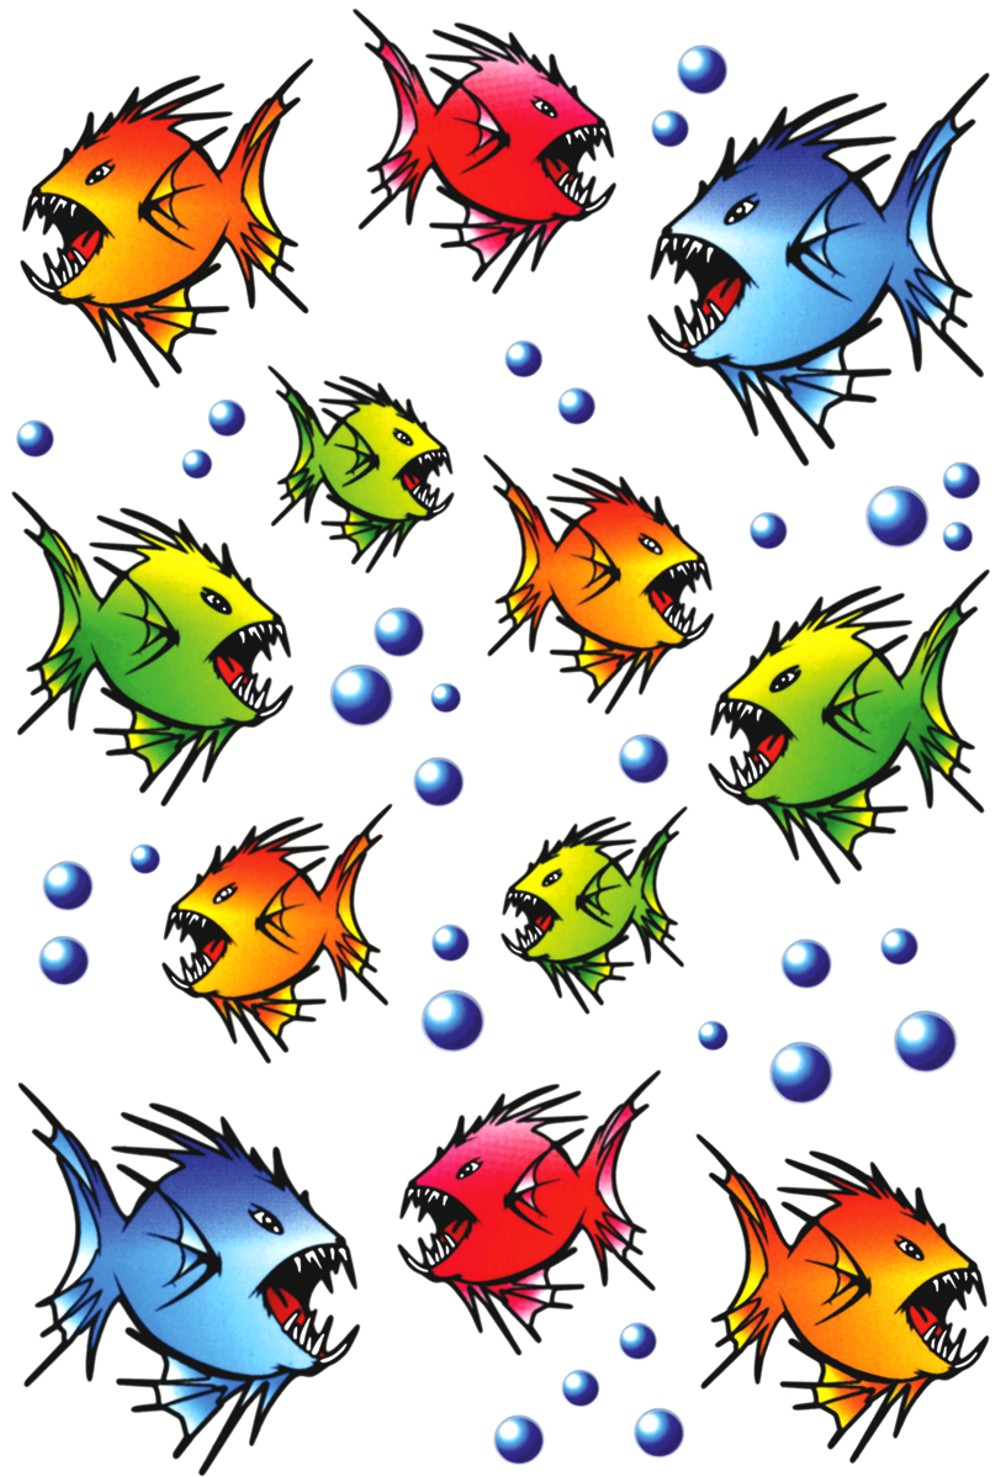 Sticker piranhas 300 x 200 mm multicolored – Bild 1